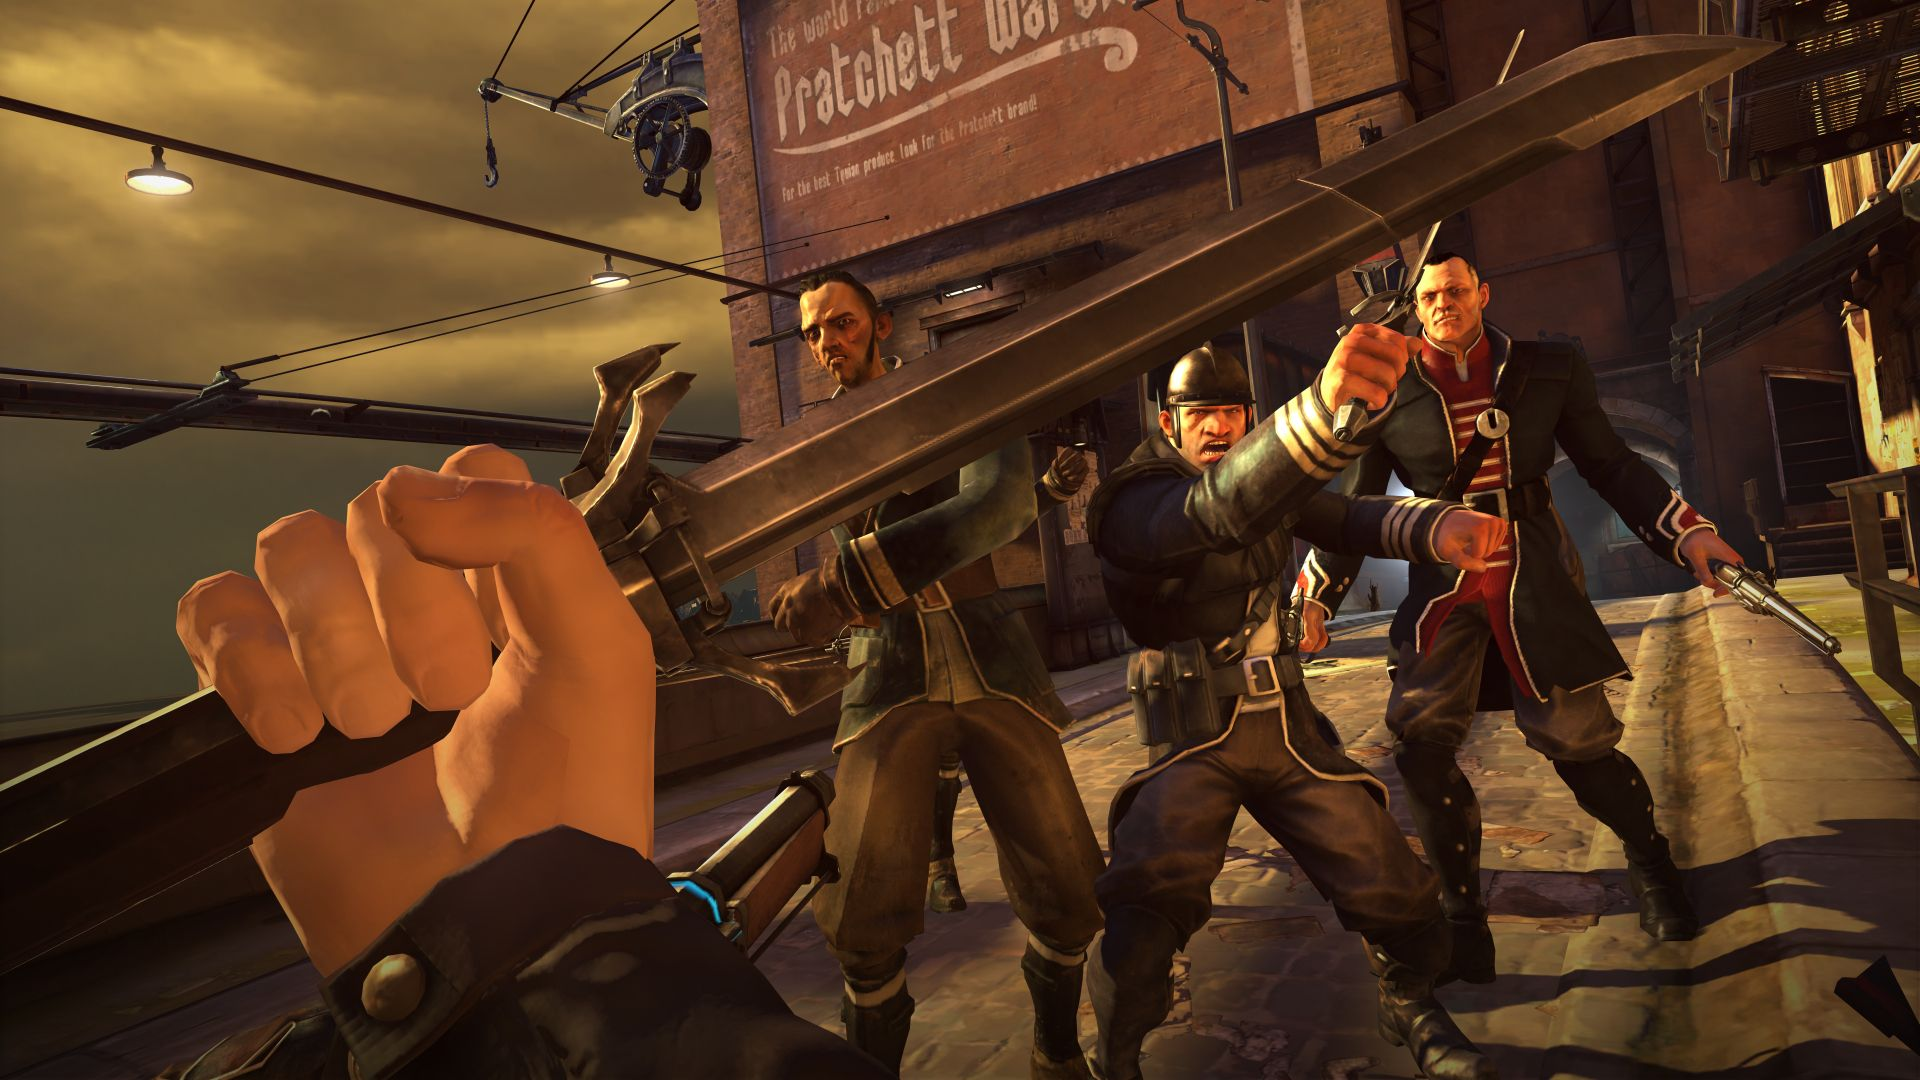 http://www.dsogaming.com/wp-content/uploads/2012/06/Dishonored_2012_06-05-12_007.jpg